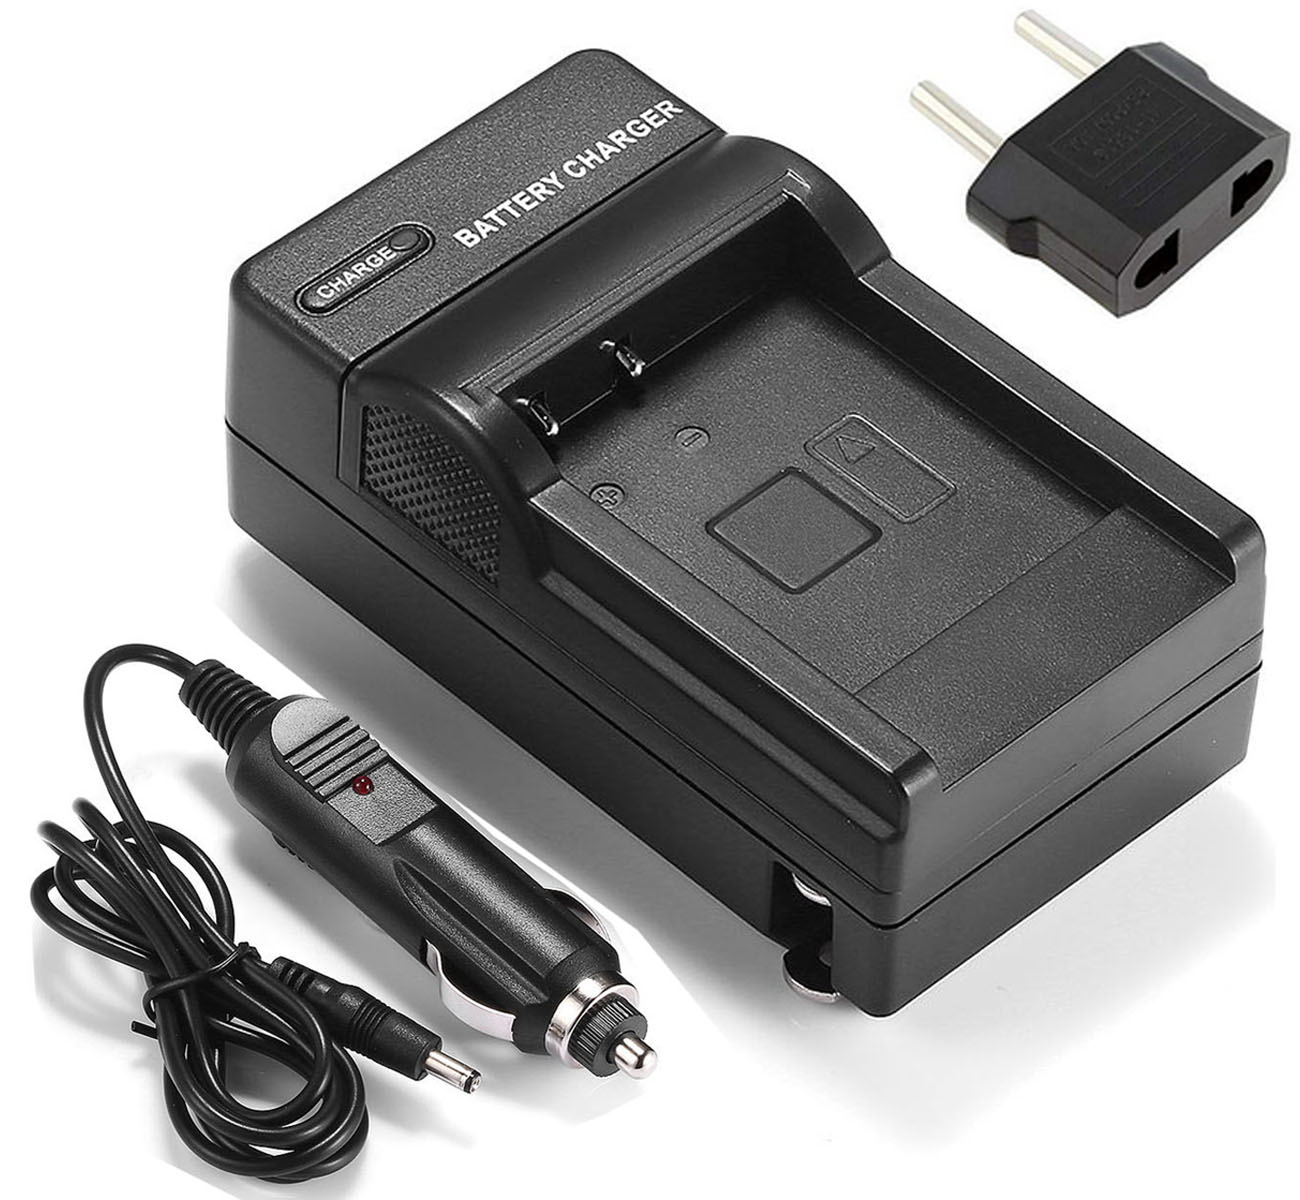 HDC-SD5PP Micro USB Battery Charger for Panasonic HDC-SD1PP HDC-SD9P//PC Camcorder